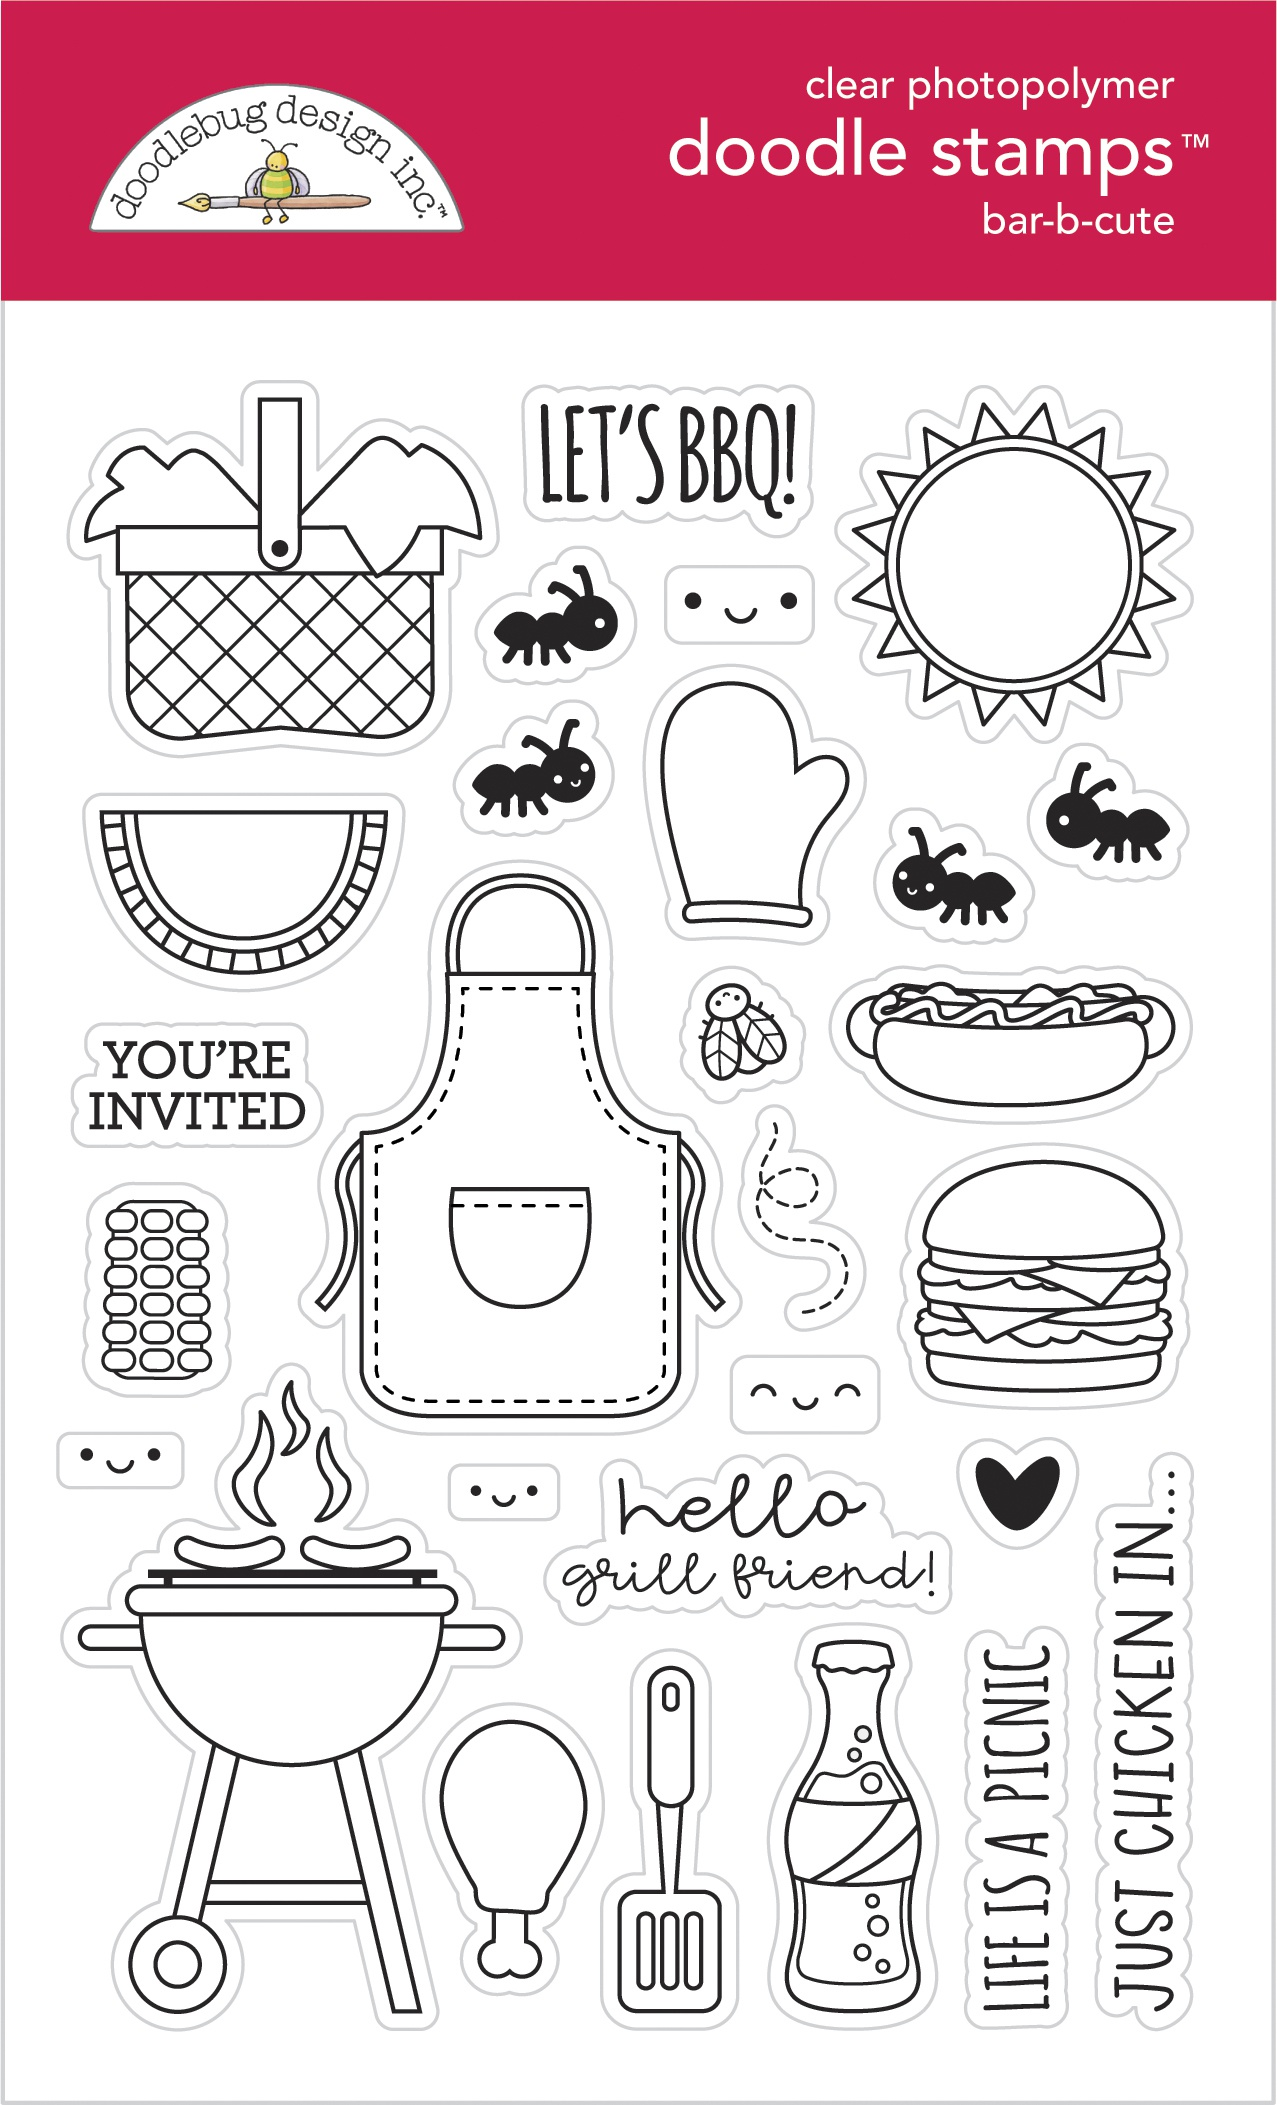 Doodlebug Stamps - Bar-B-Cute